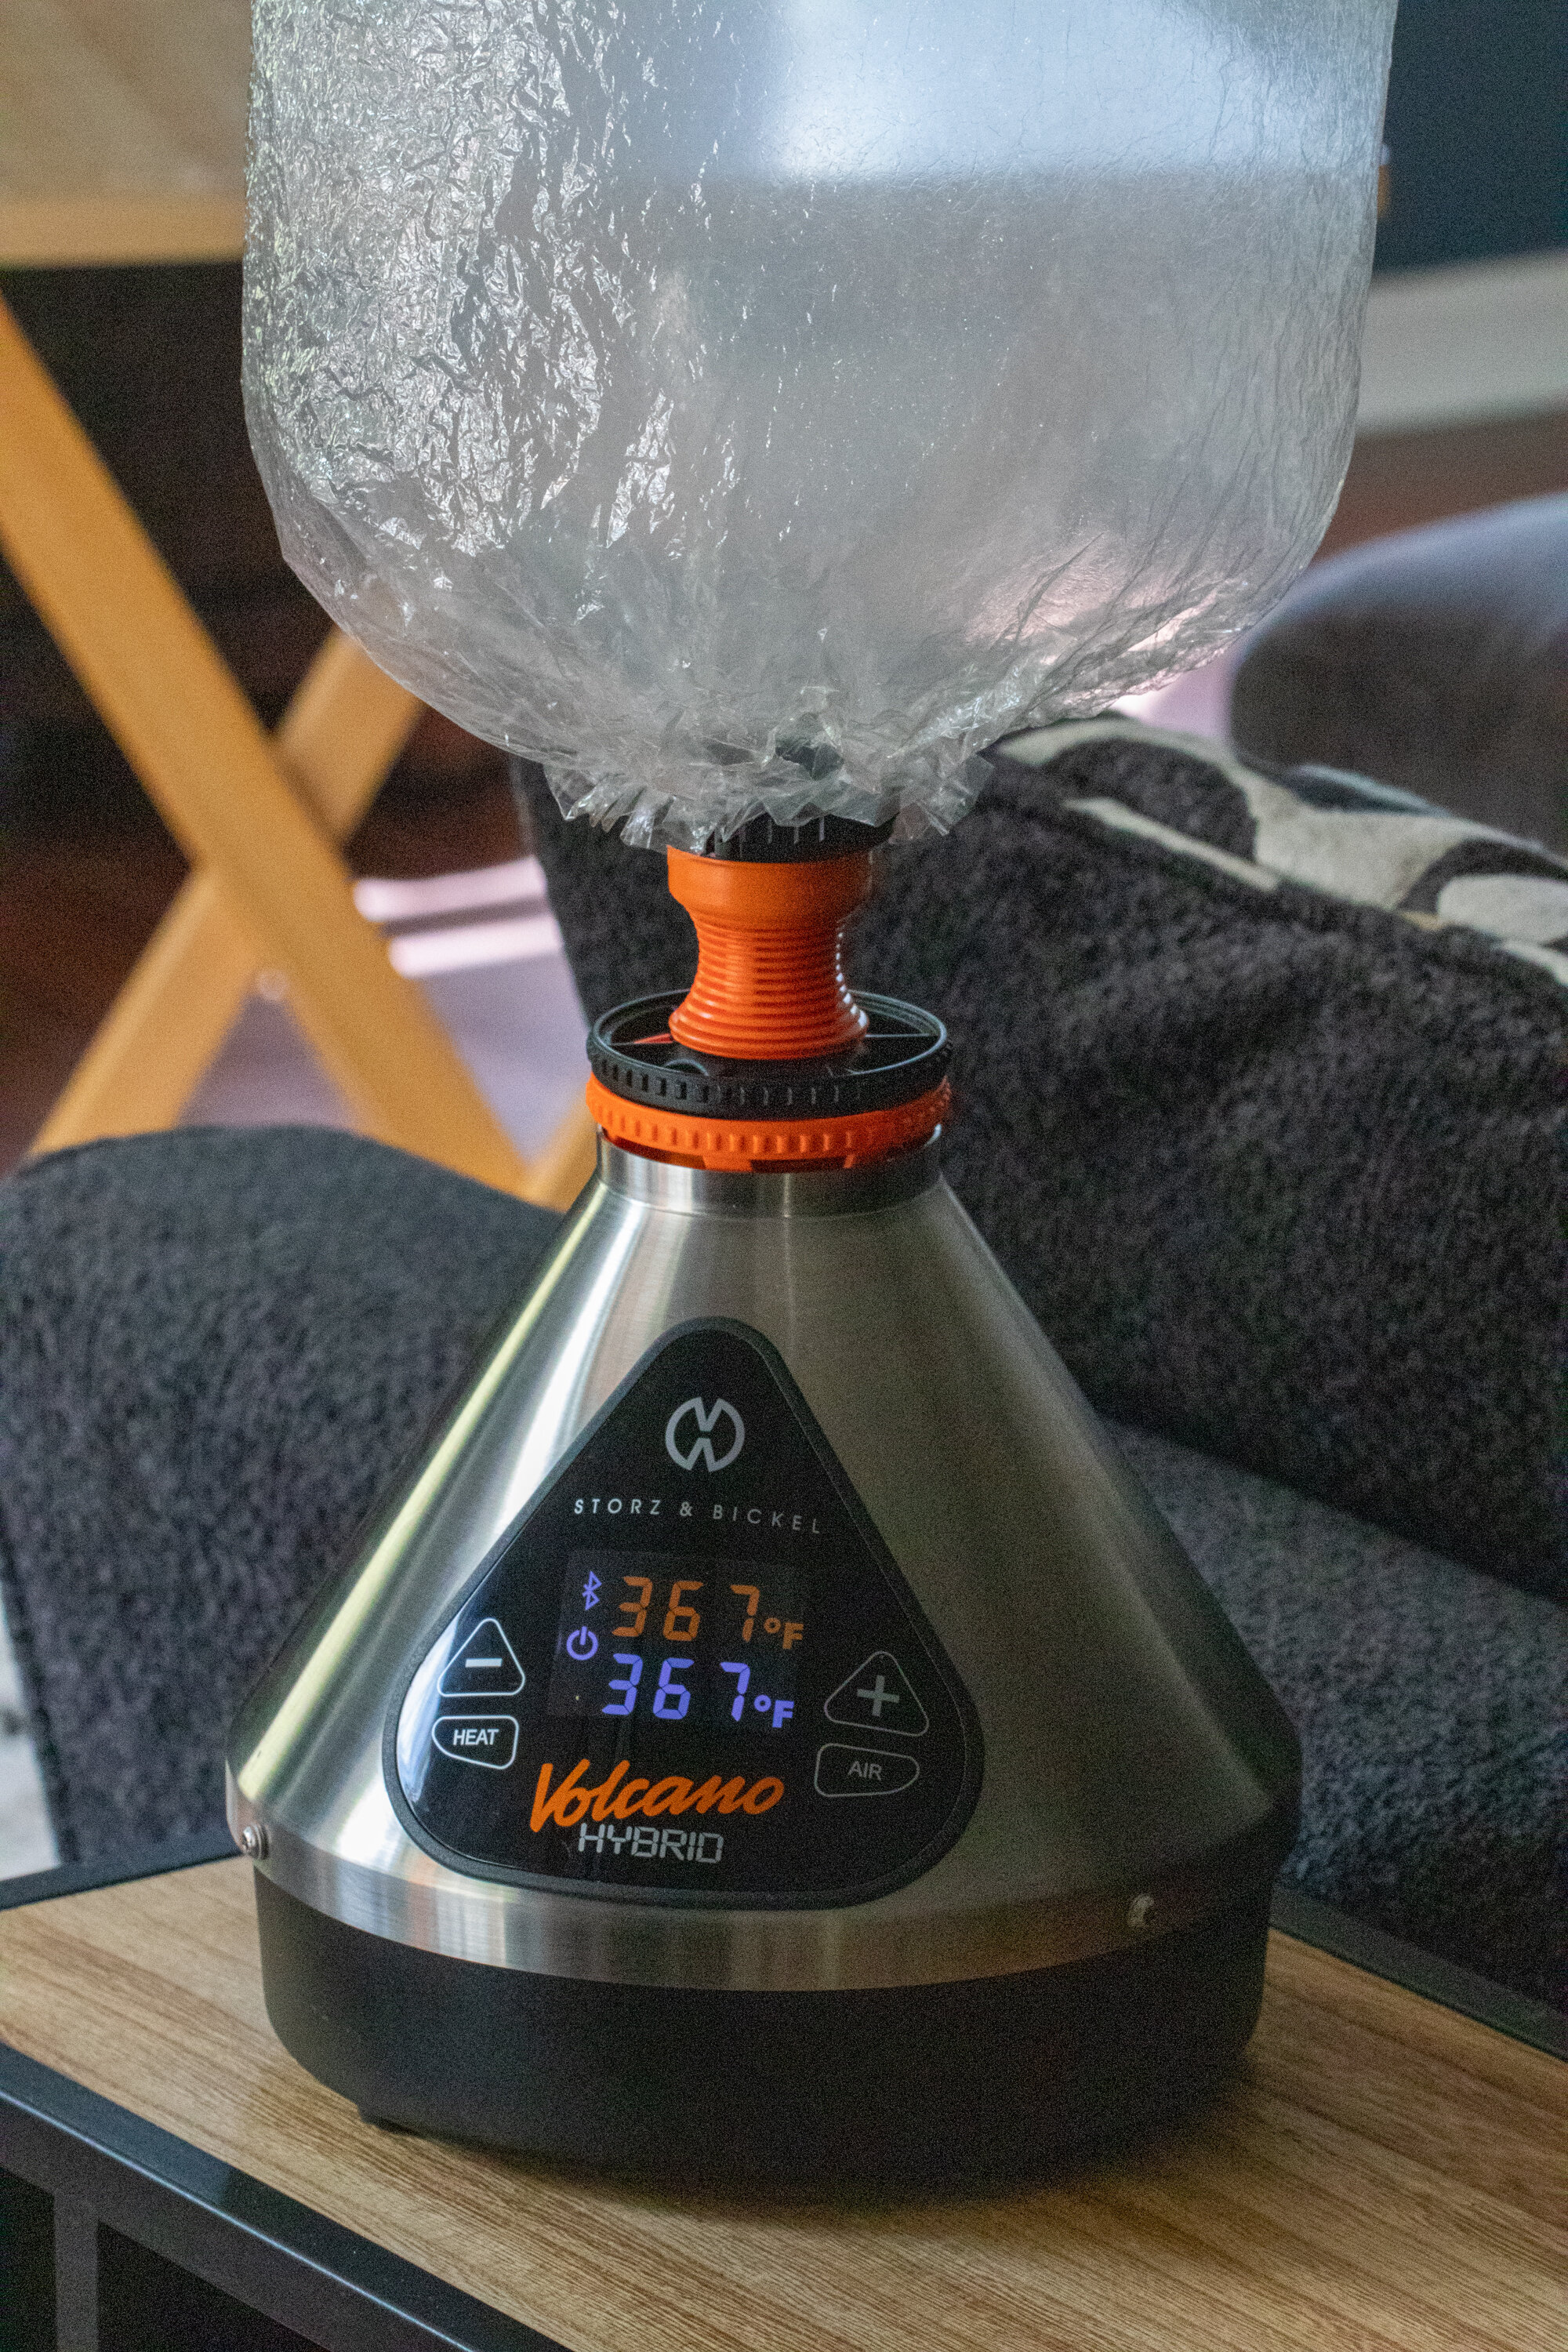 Volcano Desktop Vaporizer with Bag Attachment